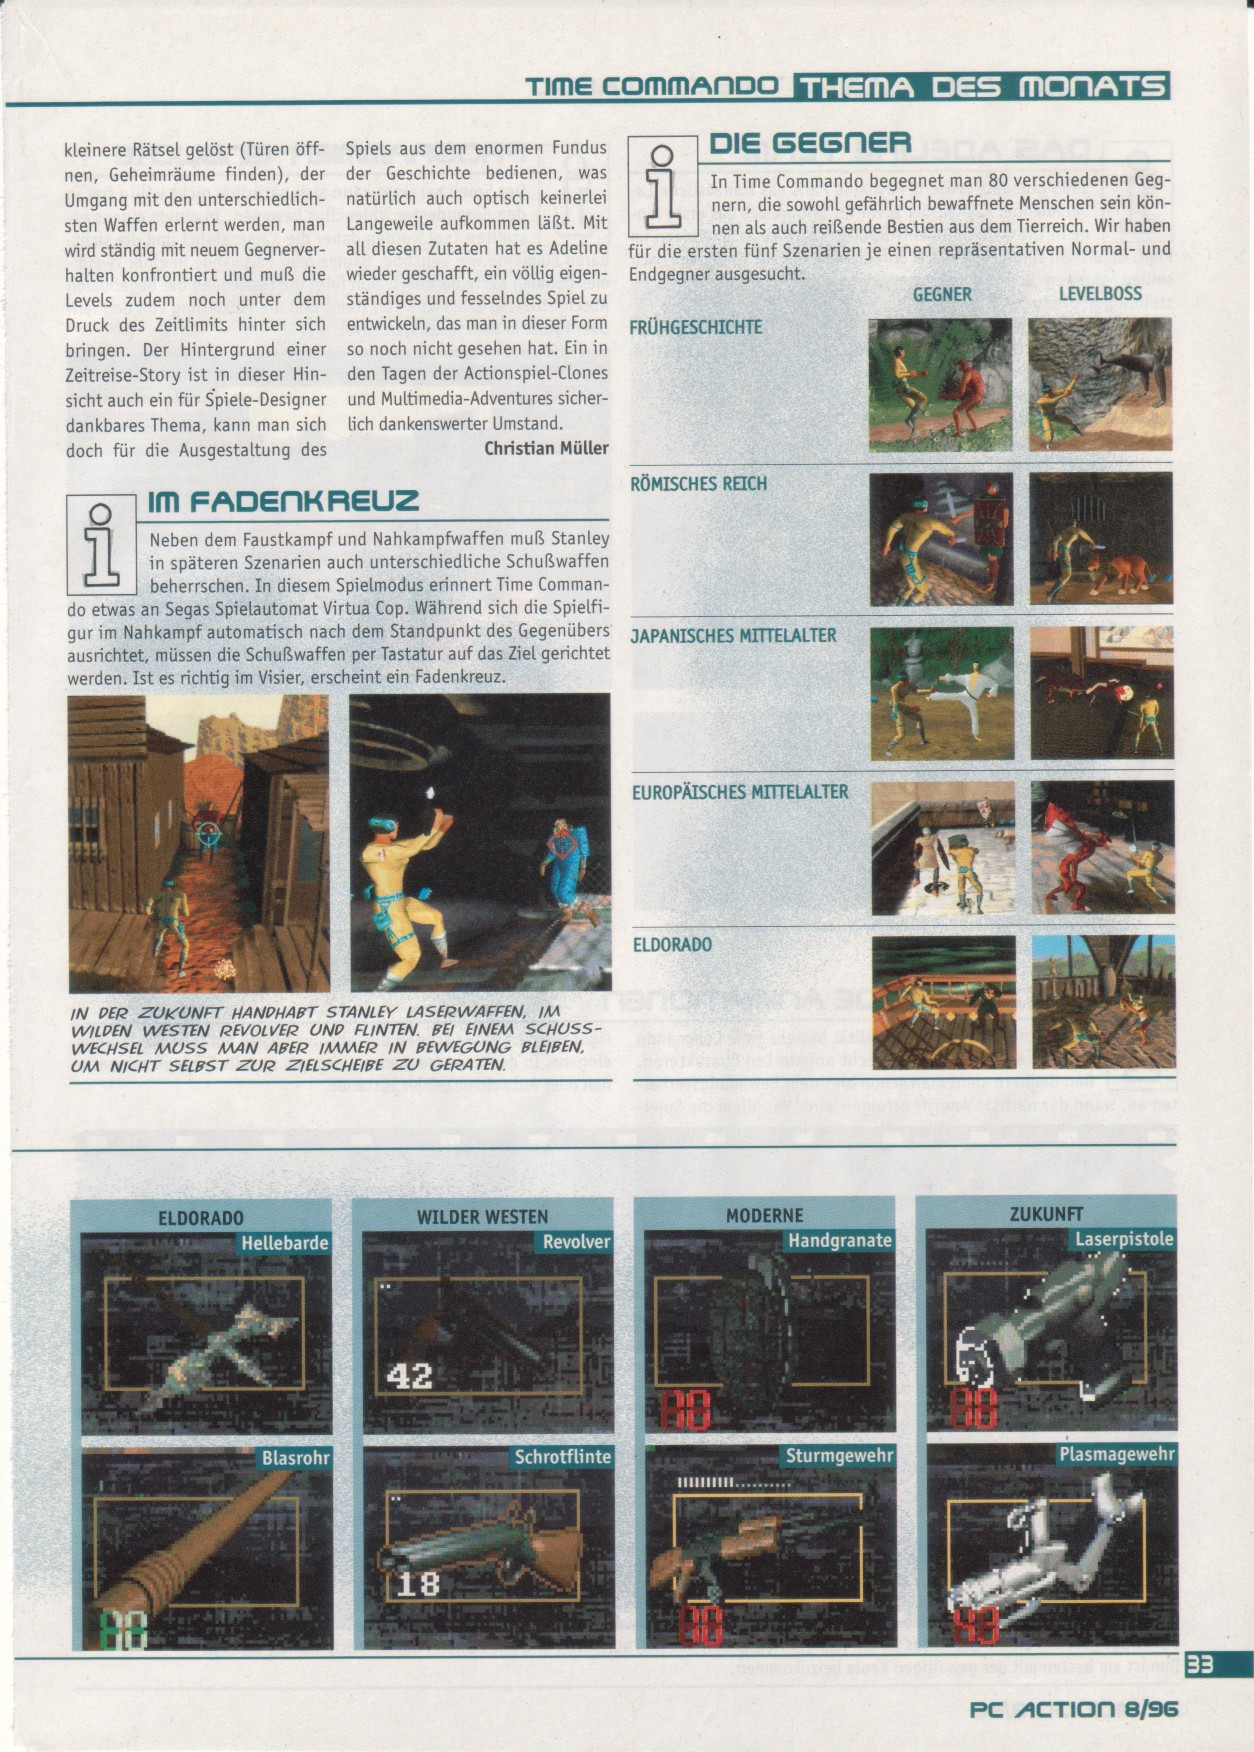 PC Action 1996-08 [4]